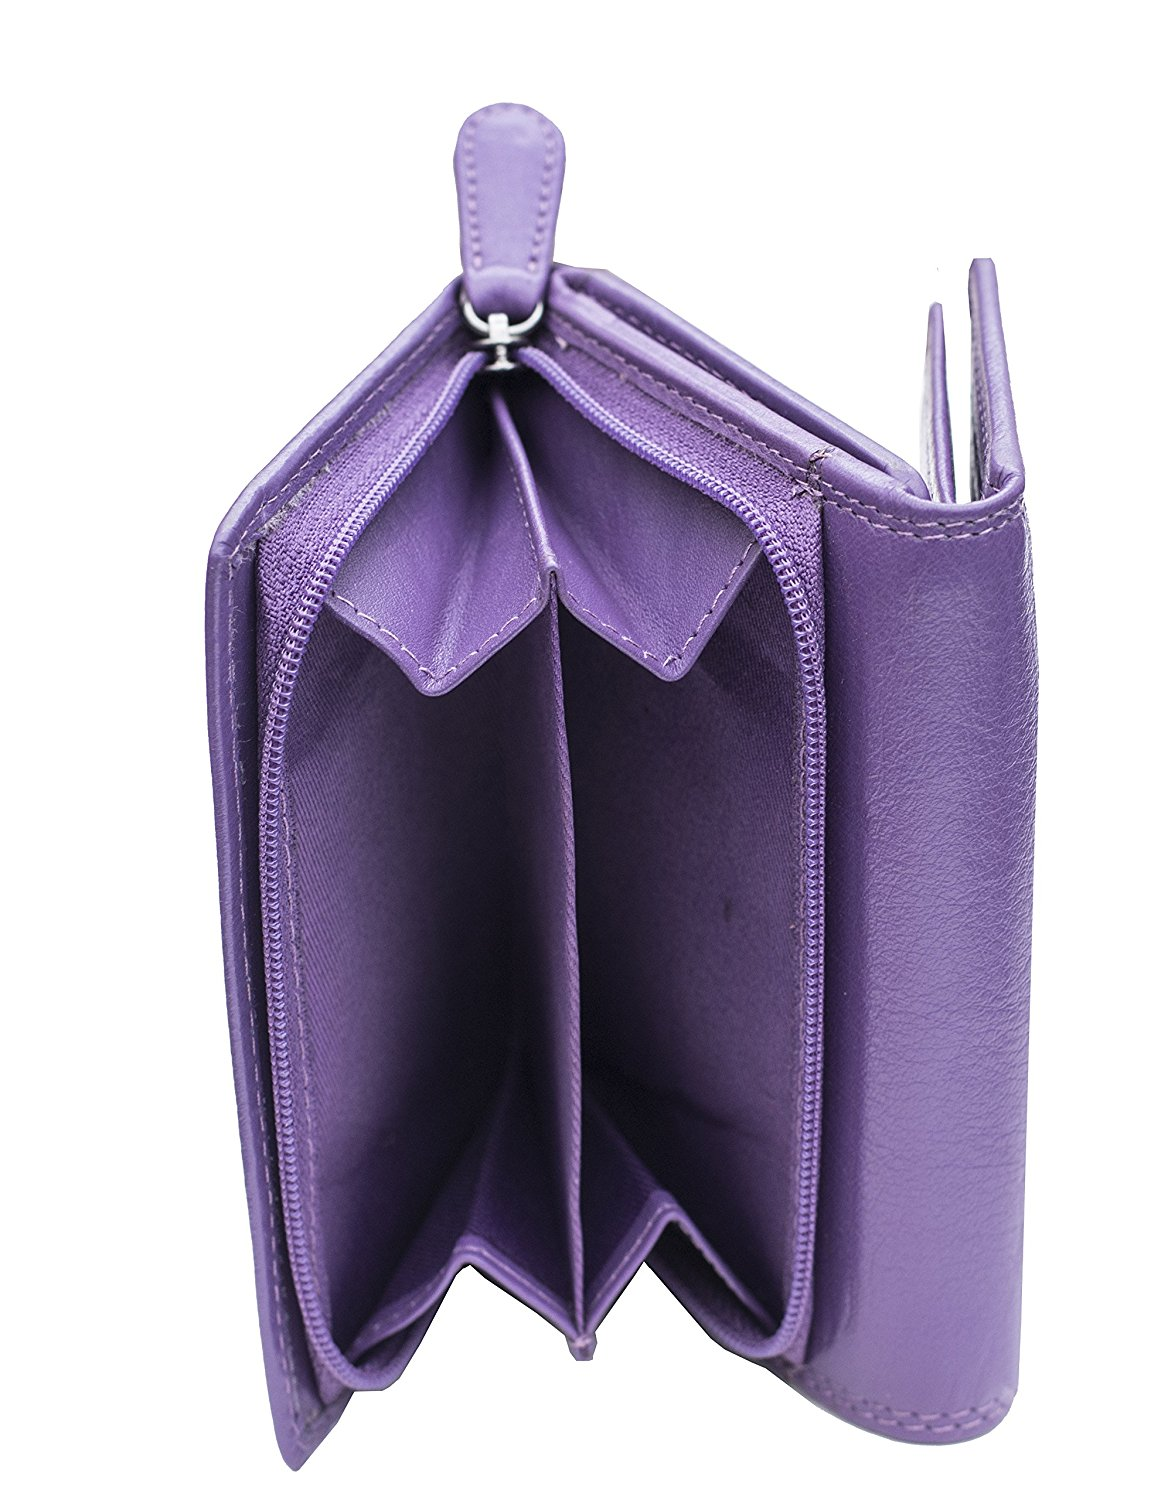 Ladies-Super-Soft-Genuine-Leather-Tri-Fold-Purse-Coin-Section-Purple-Red-Plum thumbnail 25